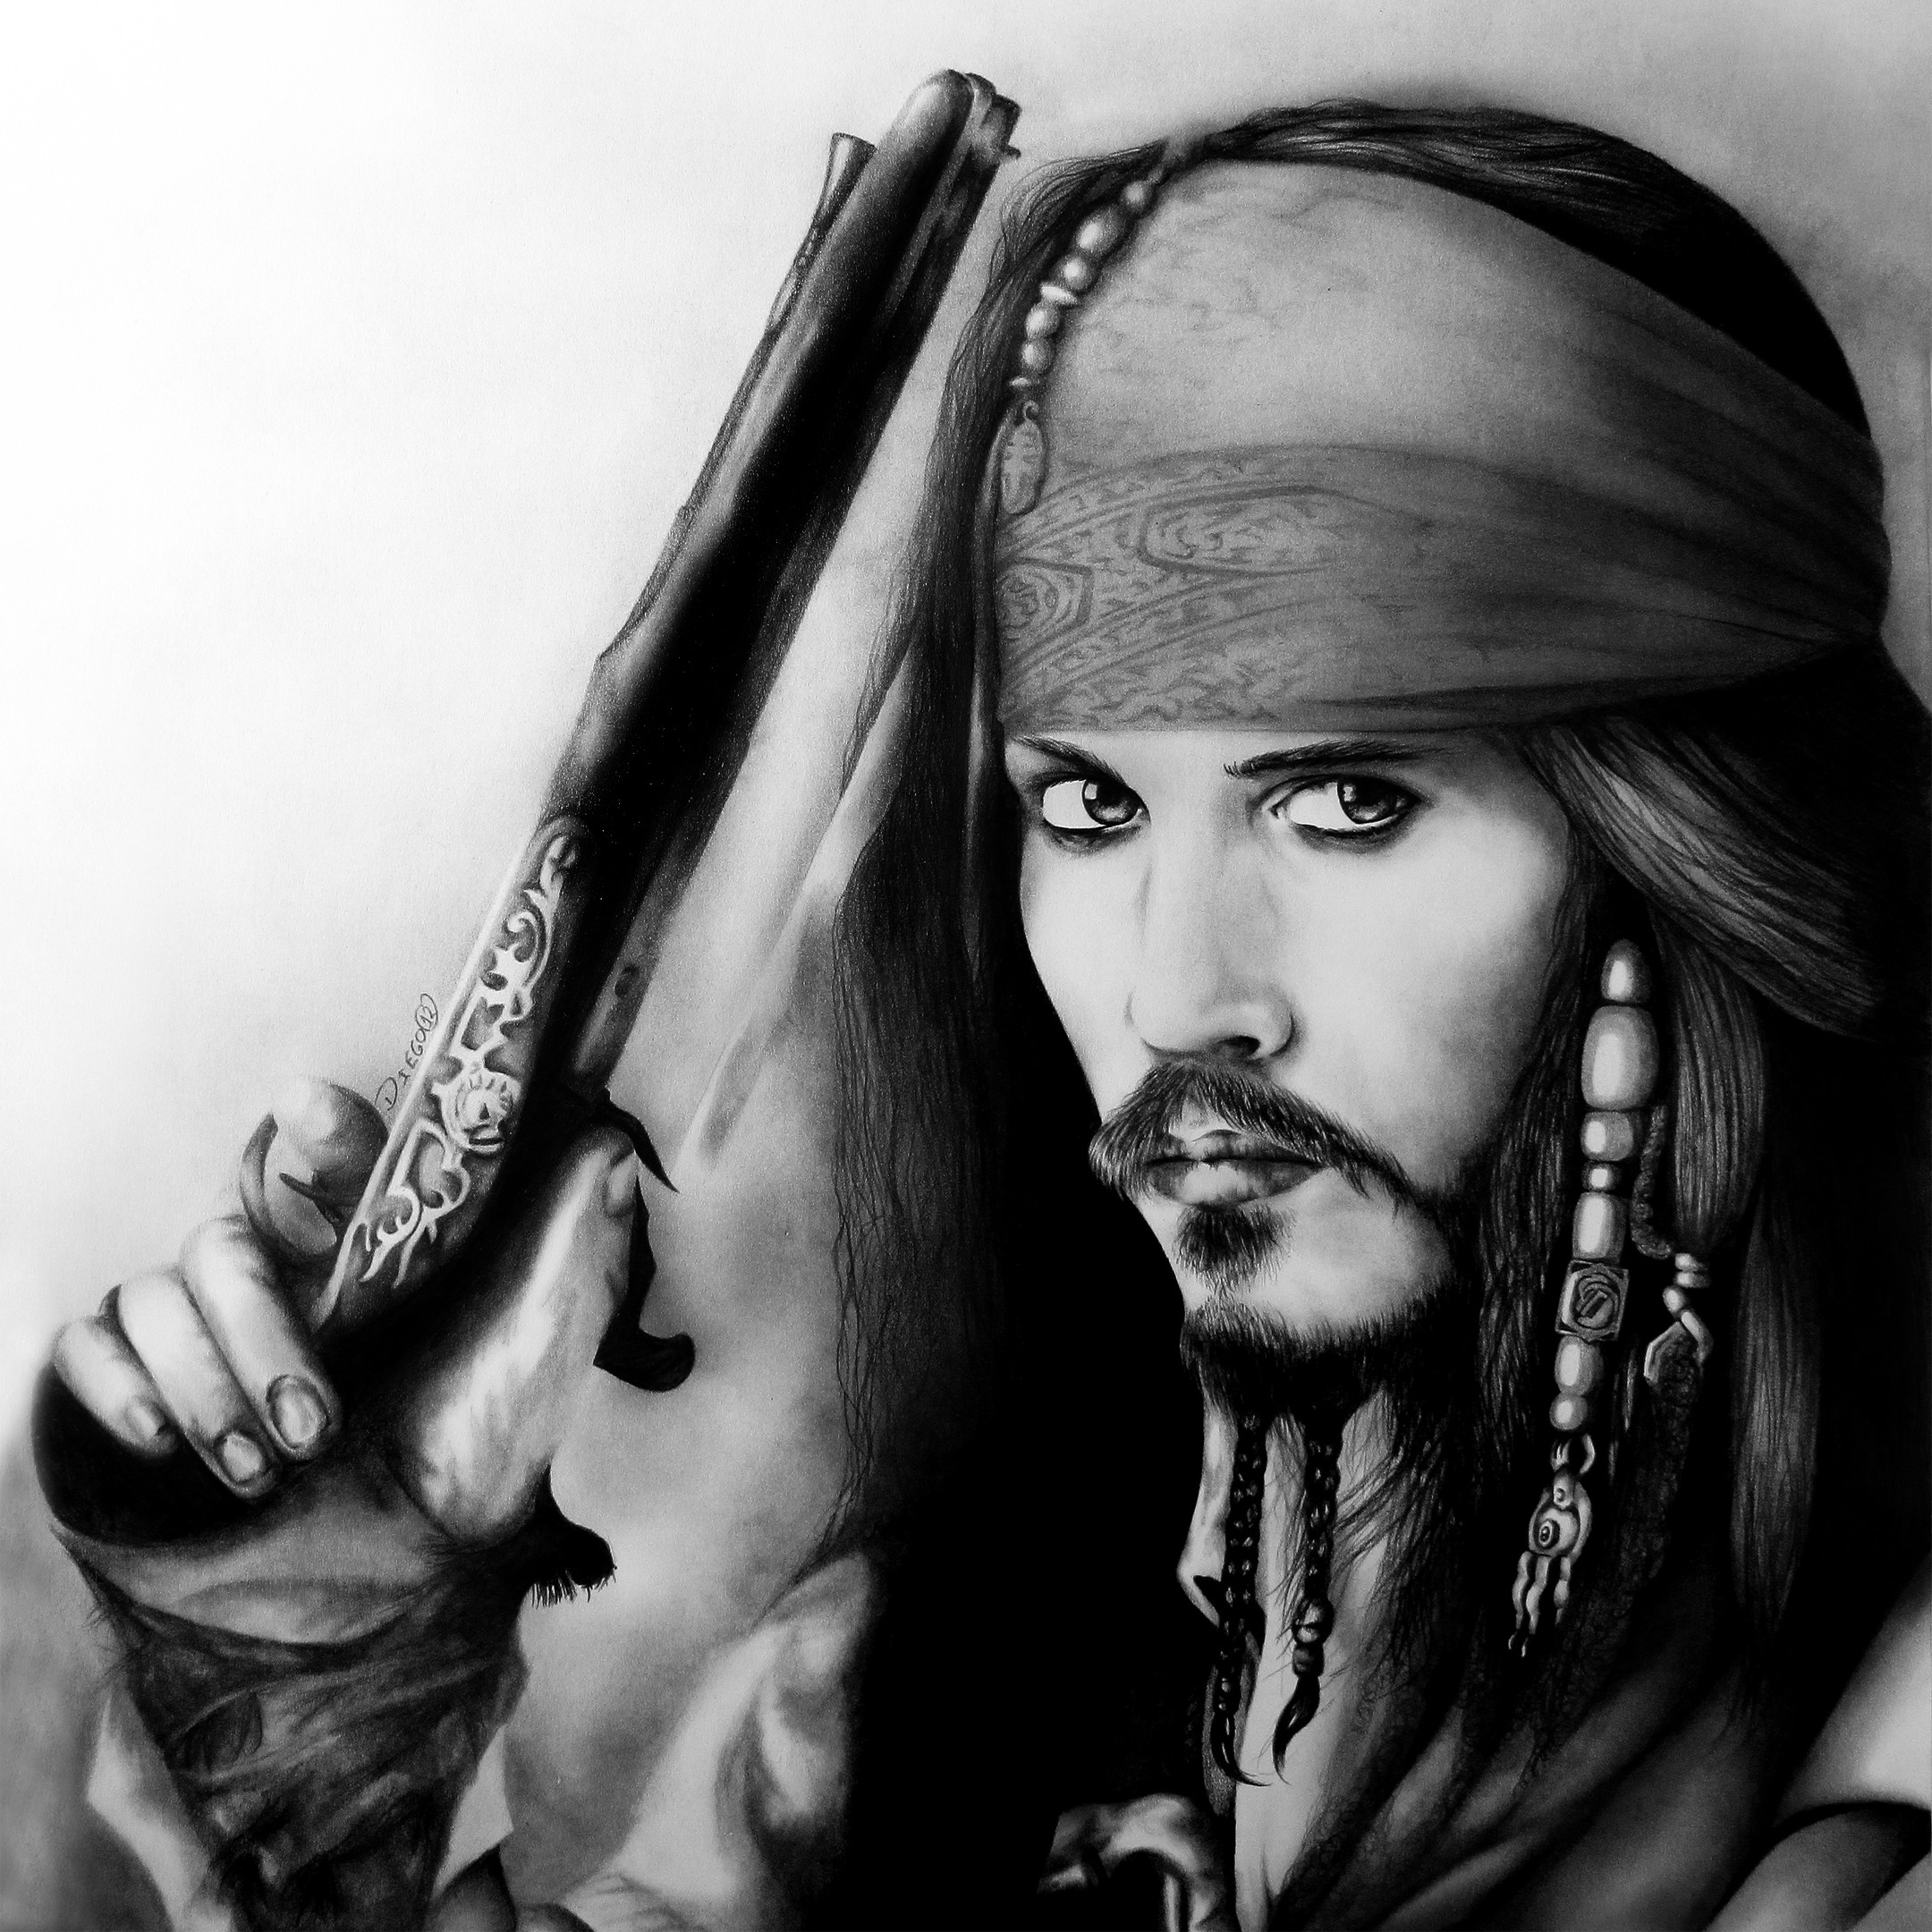 Pirates Of The Caribbean Wallpaper Hd: Captain Jack Sparrow Wallpaper (53+ Images